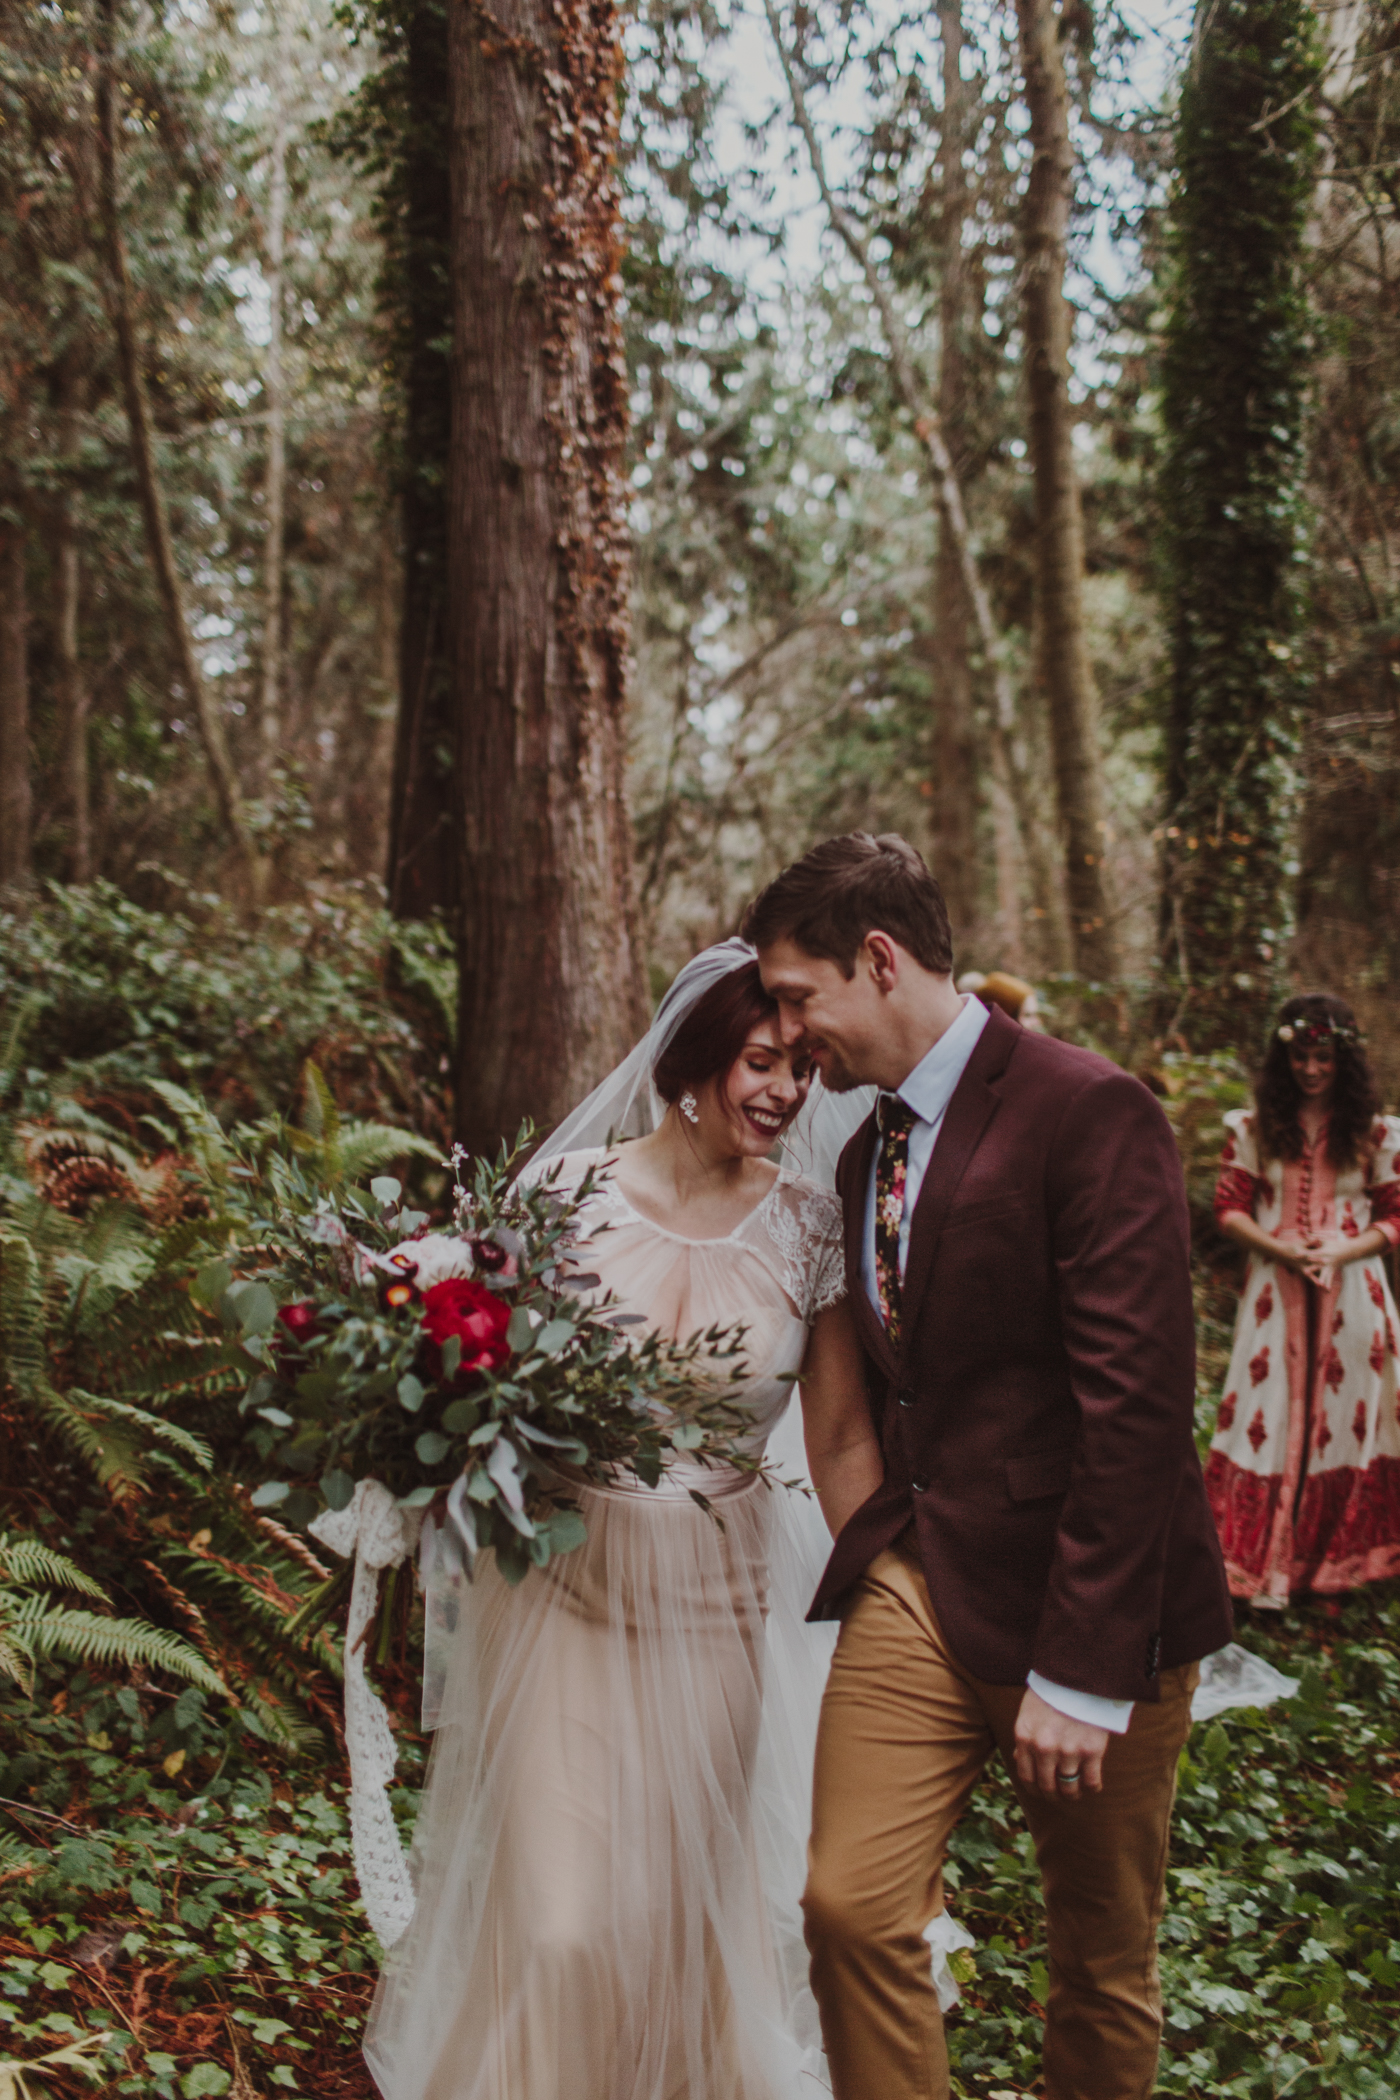 Olympic Peninsula Elopement-LizMorrow-90.jpg